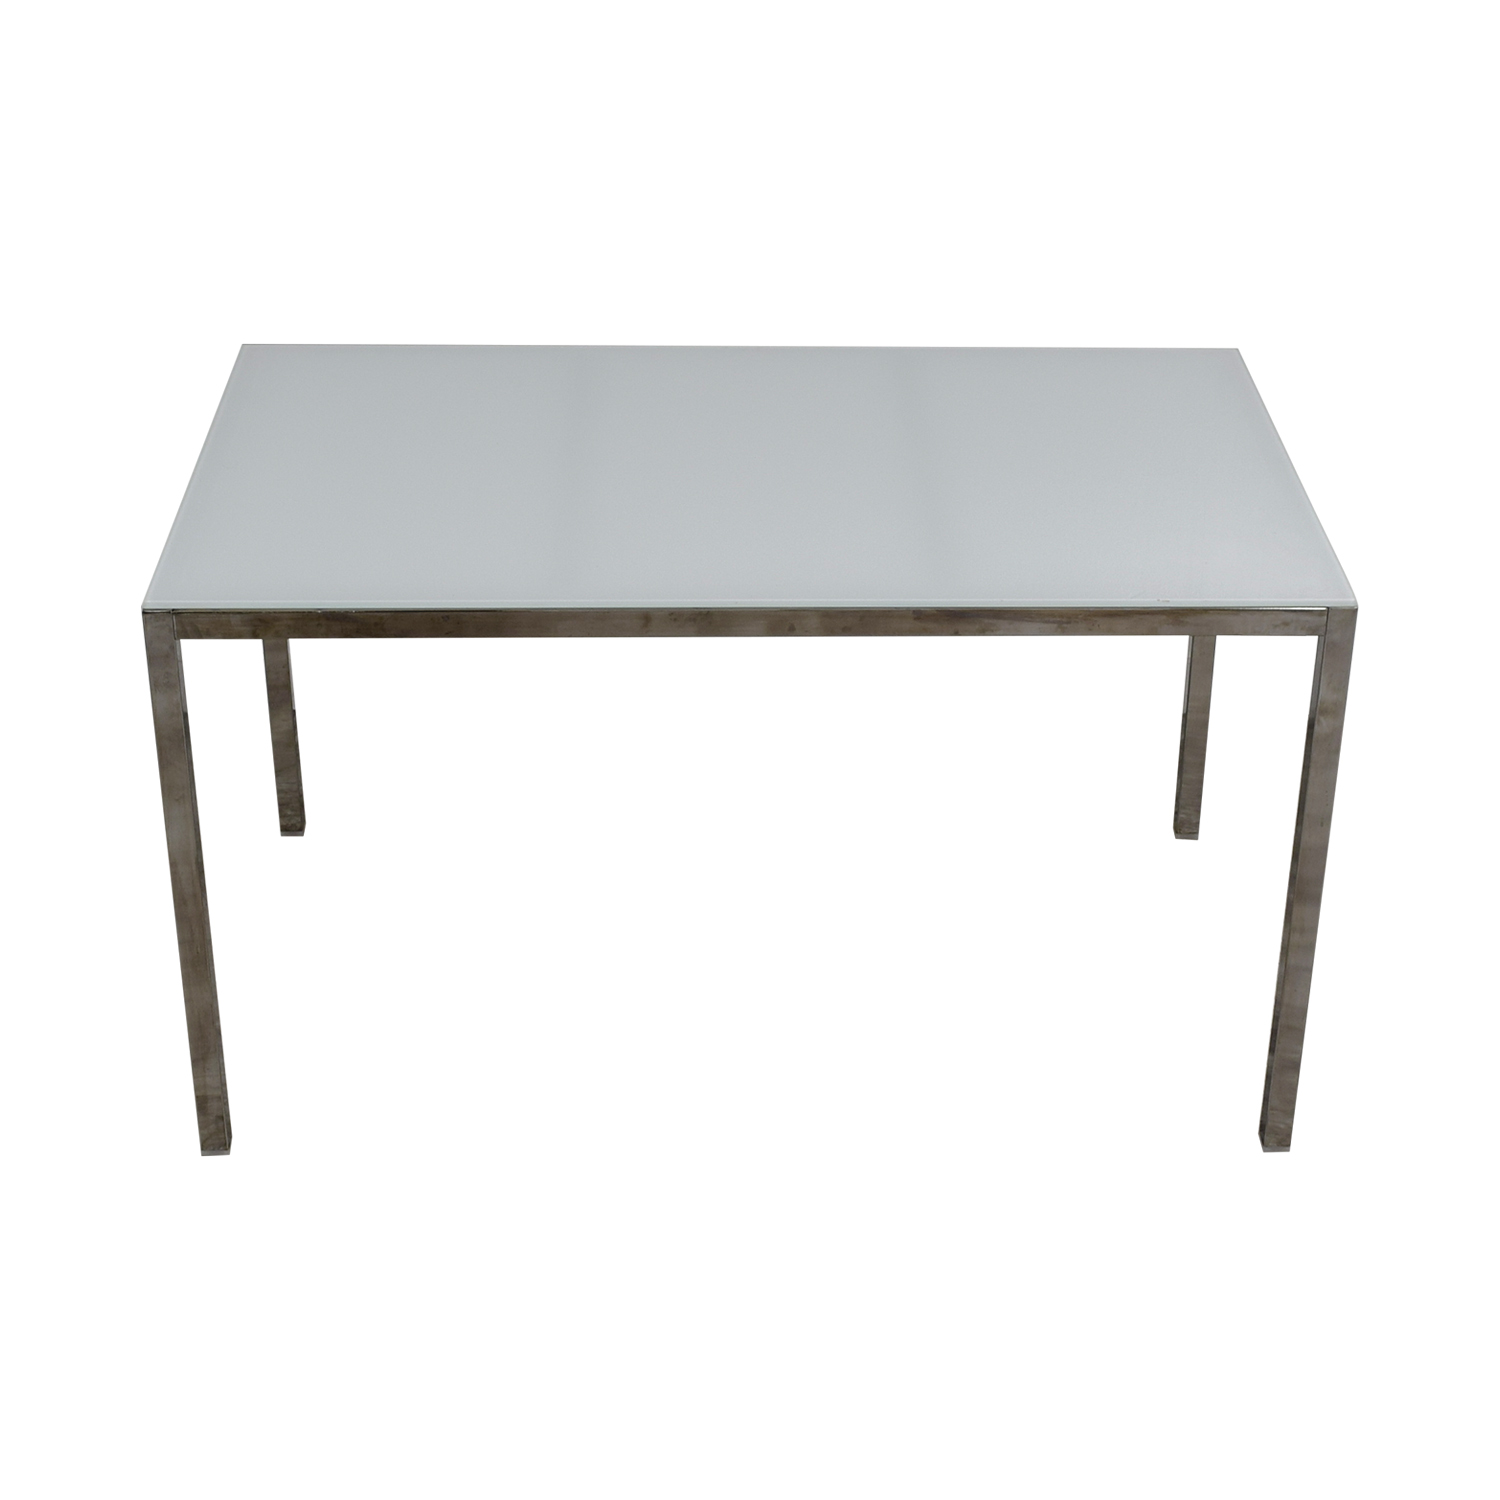 IKEA IKEA White Glass Top Dining Table discount